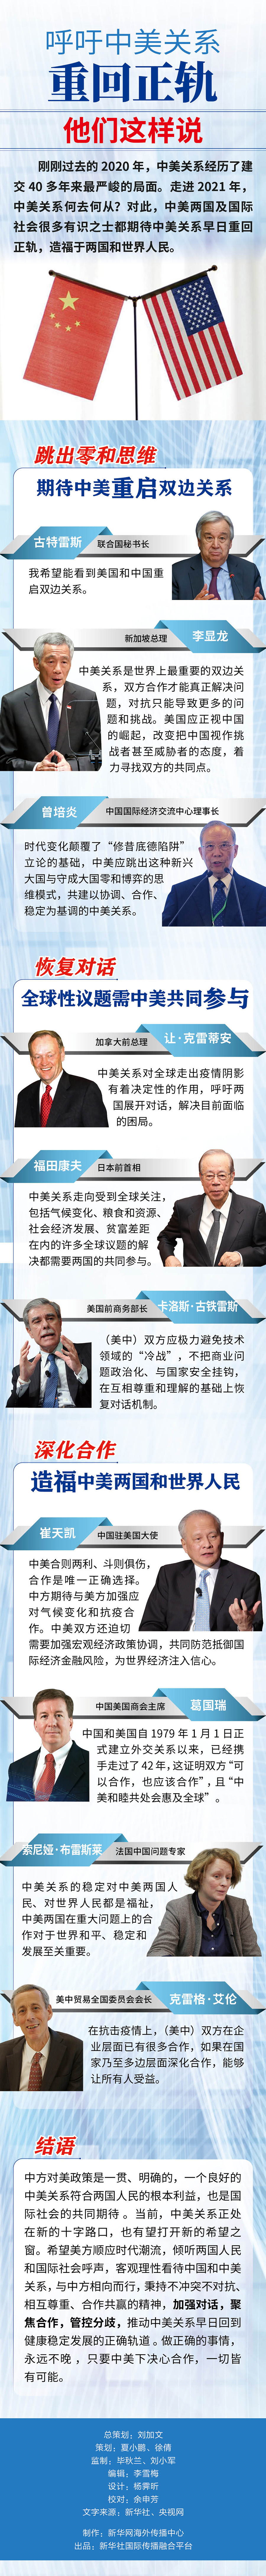 [diagram] they call on China US relations to get back on track, they say